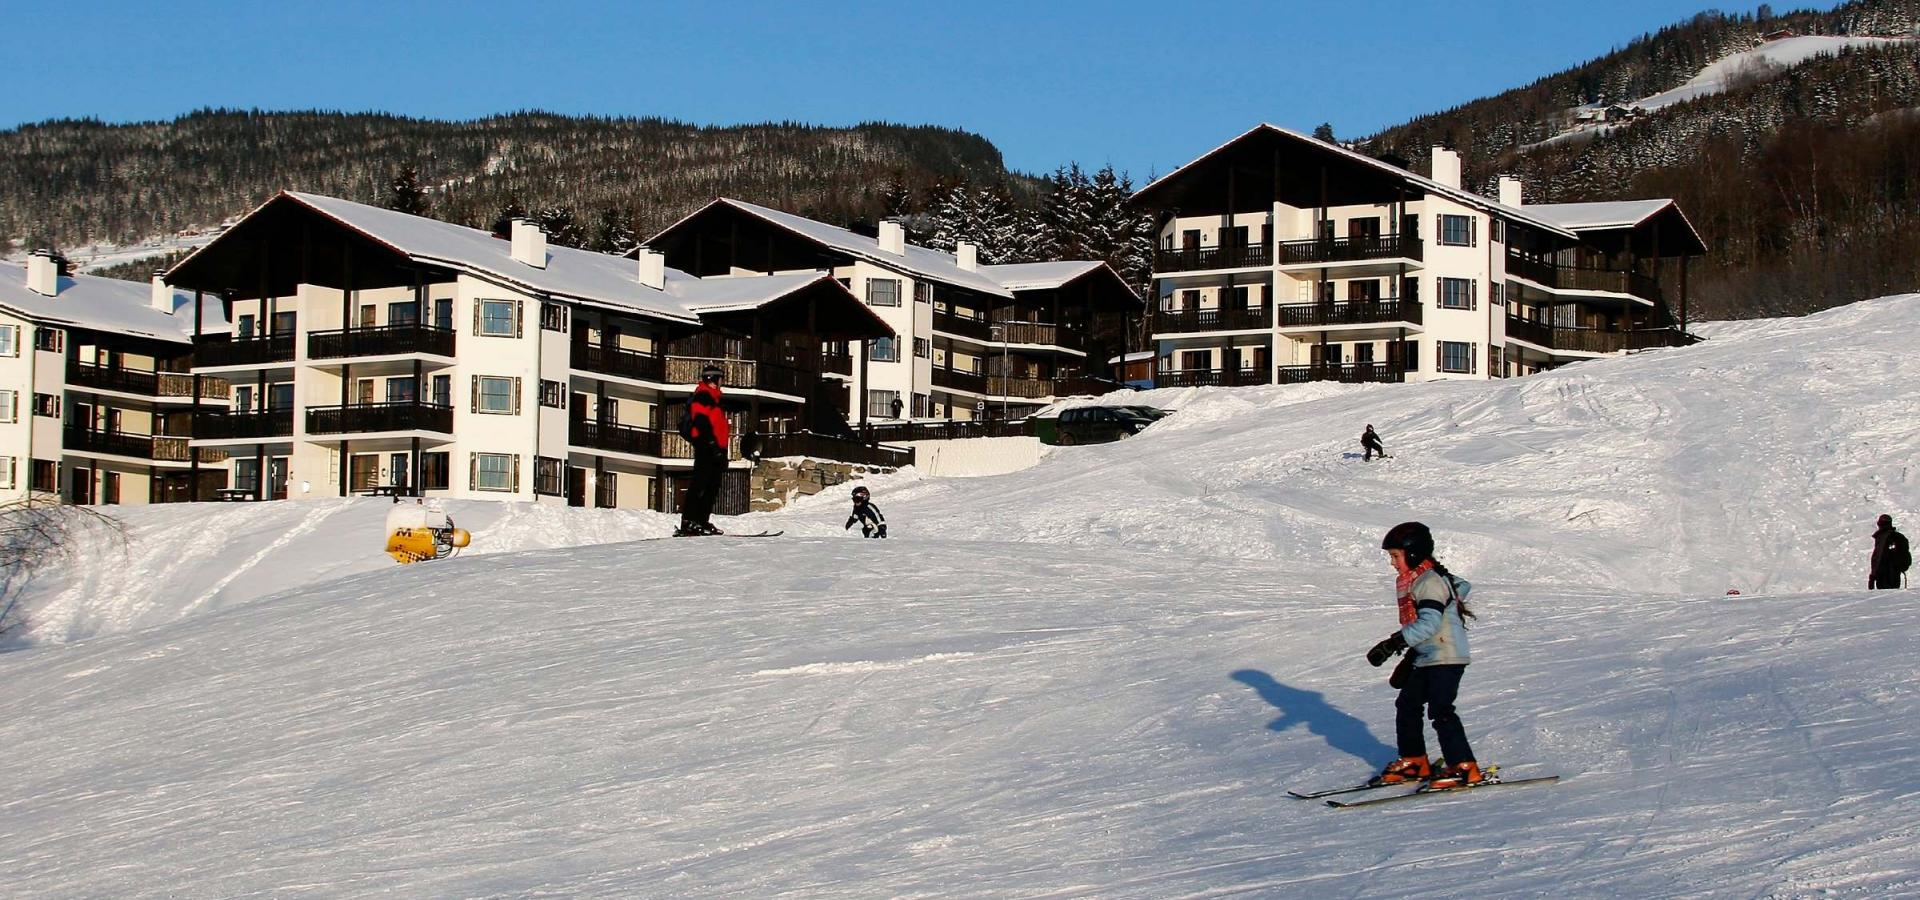 Alpin Apartments Solsiden vinter